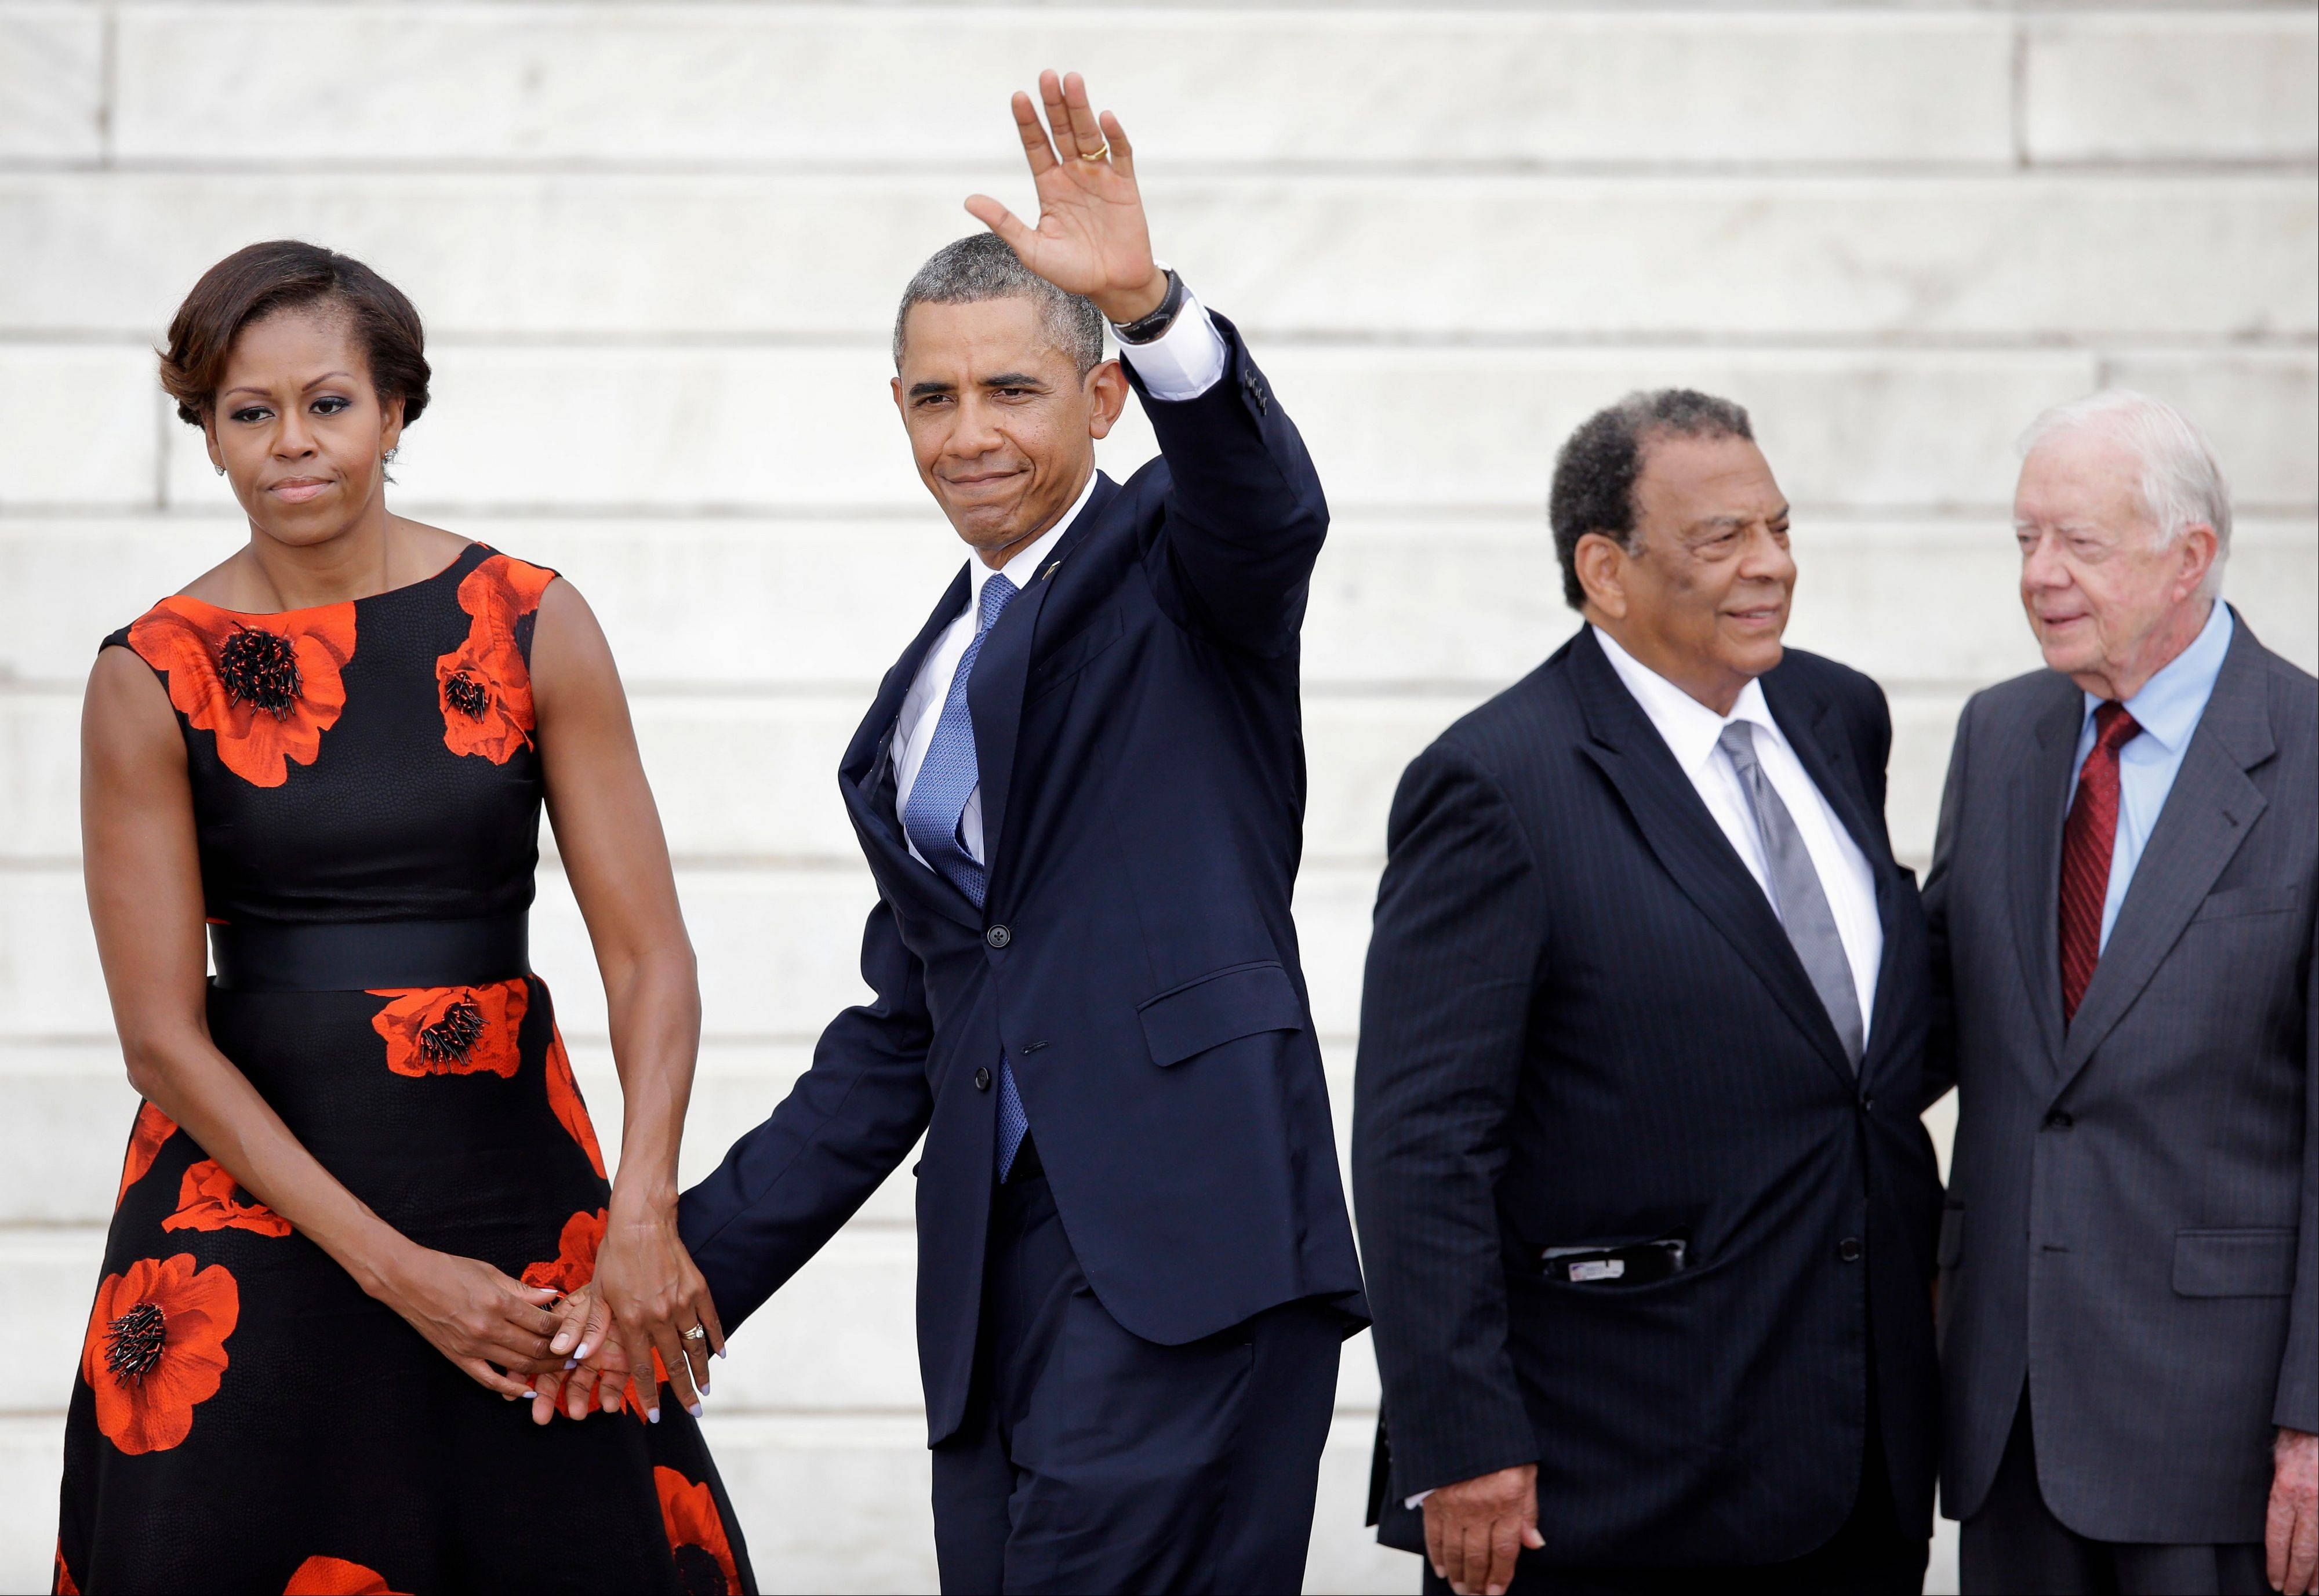 President Barack Obama, accompanied by first lady Michelle Obama, waves at the Let Freedom Ring ceremony at the Lincoln Memorial in Washington.